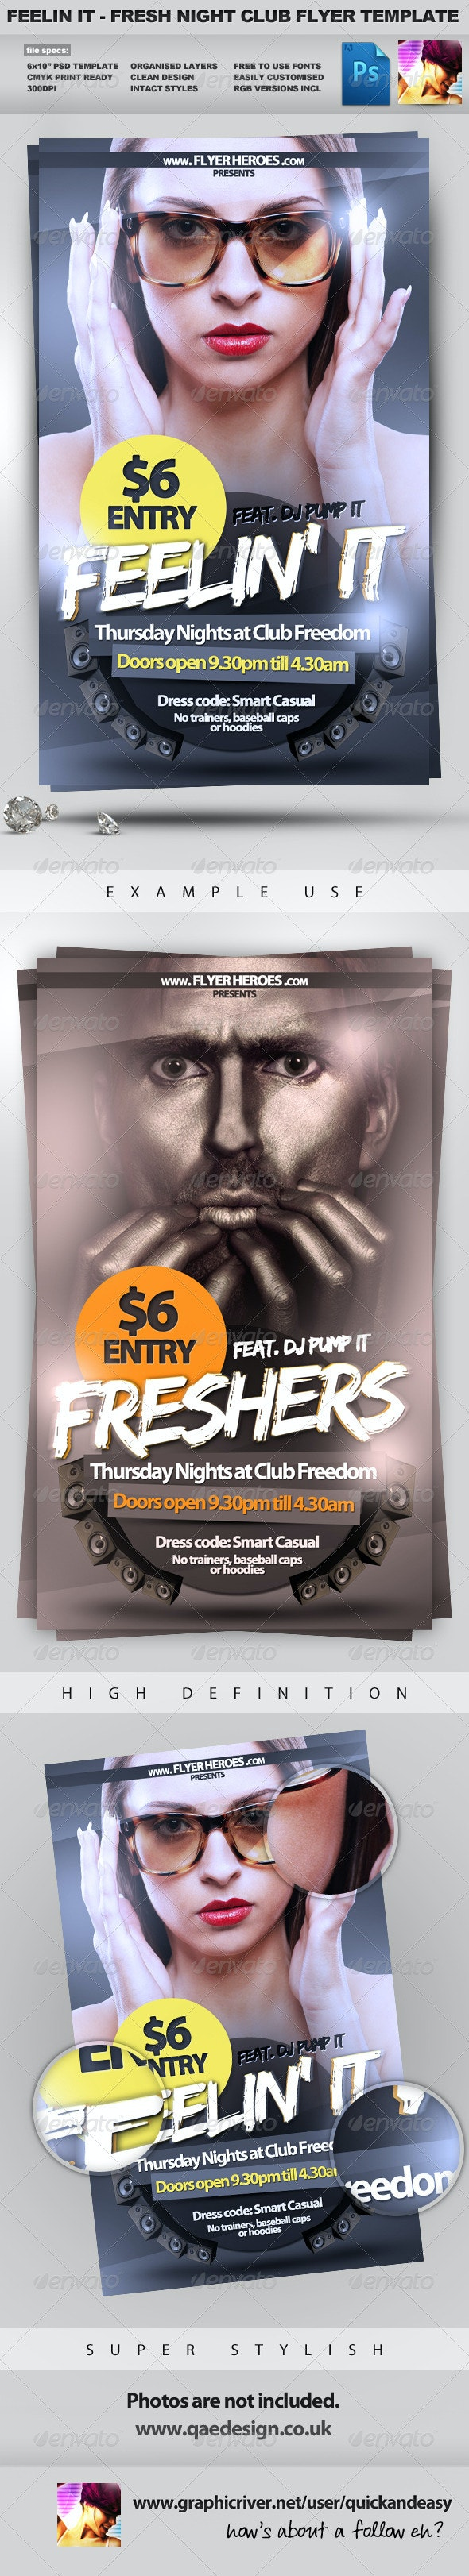 Feelin It - Nightclub Party Flyer Template - Clubs & Parties Events